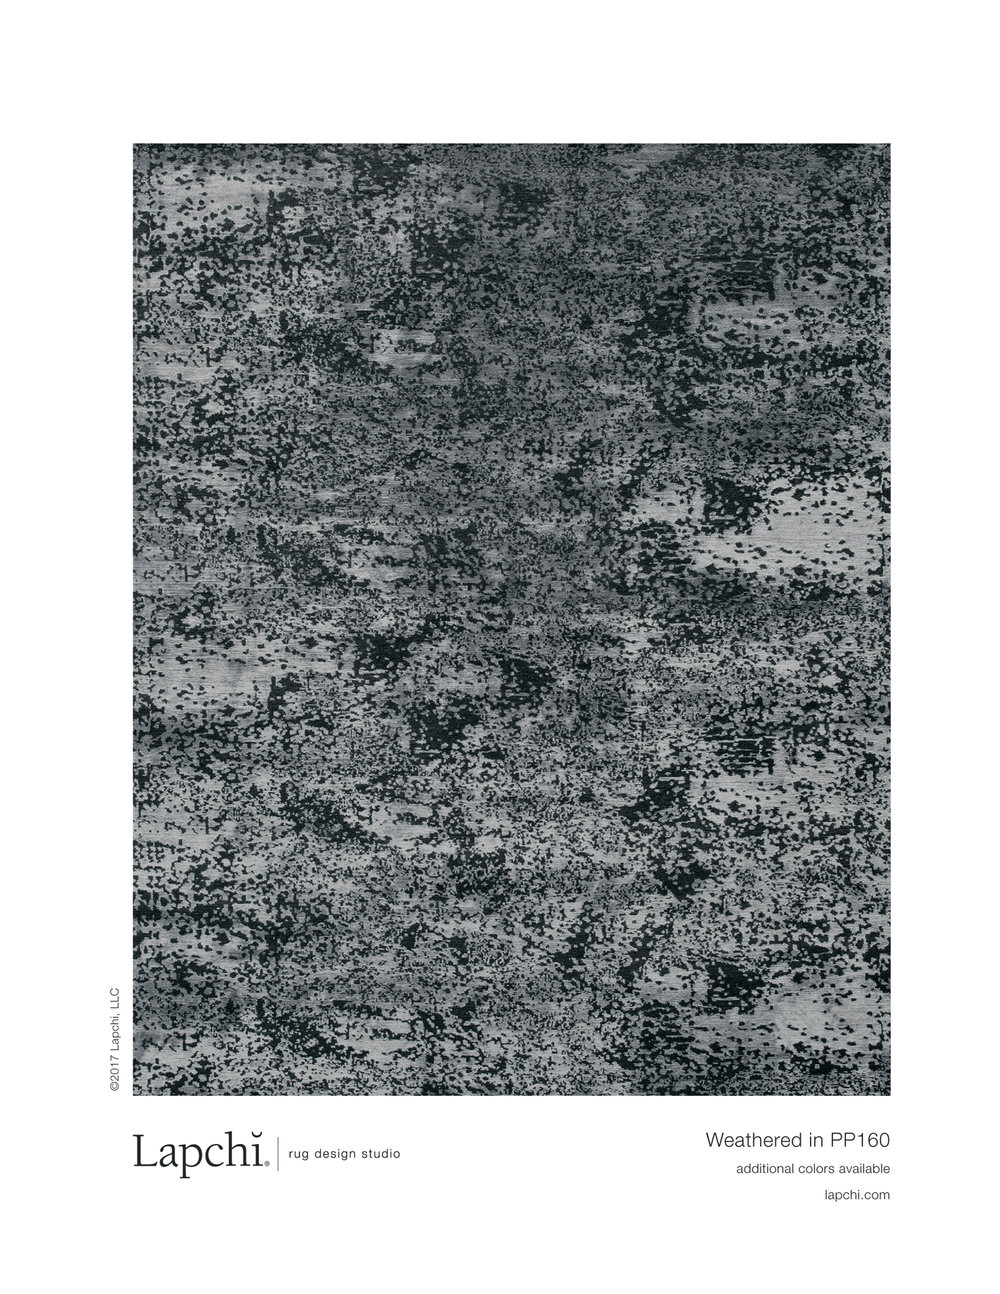 Weathered area rug from Lapchi rug design studio.